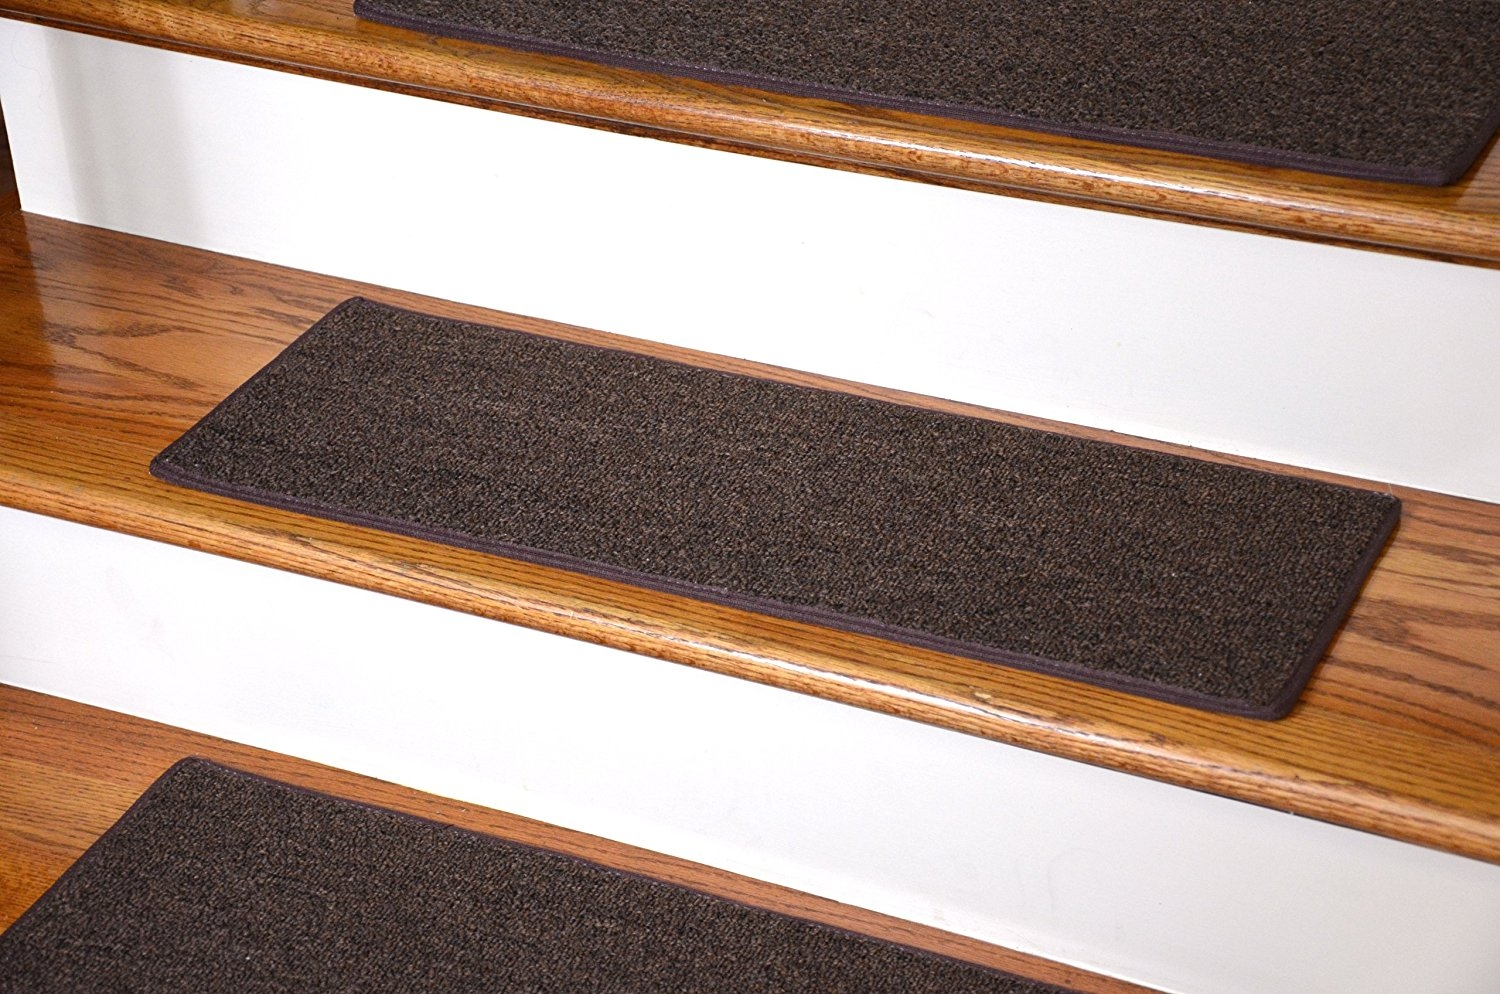 Dean Non Slip Tape Free Pet Friendly Diy Carpet Stair Treadsrugs Intended For Non Skid Stair Treads Carpet (#5 of 20)